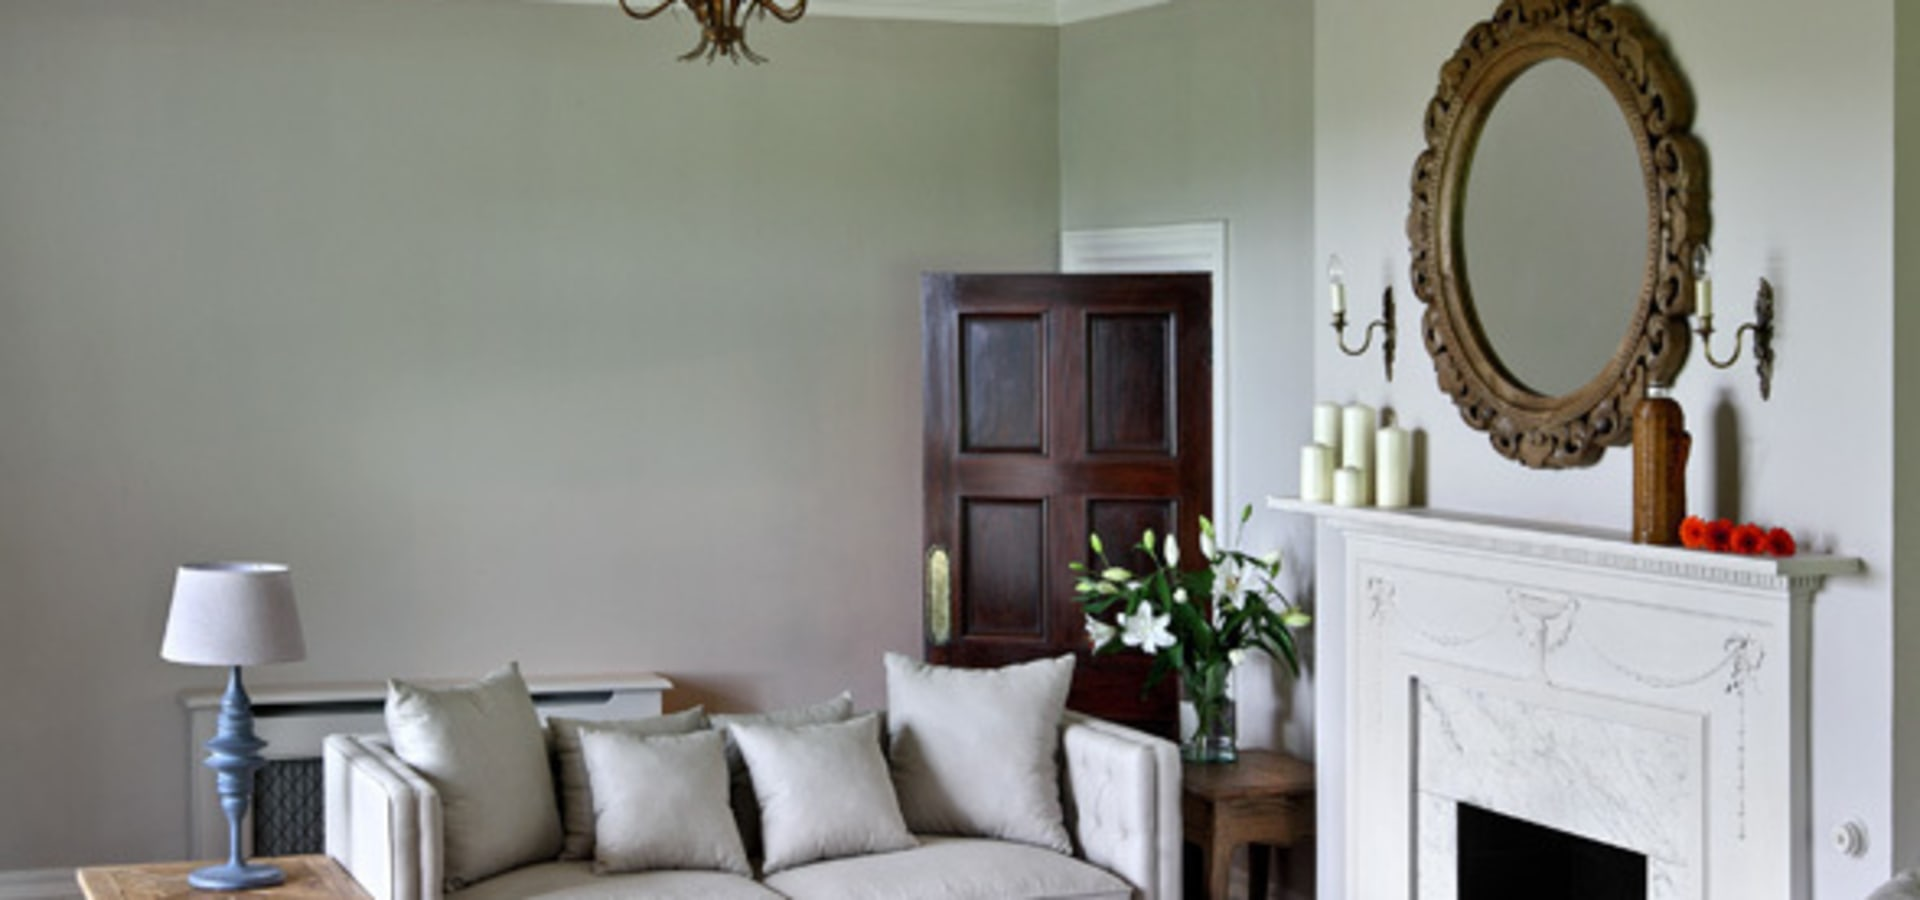 Blue Isle Interiors Ltd